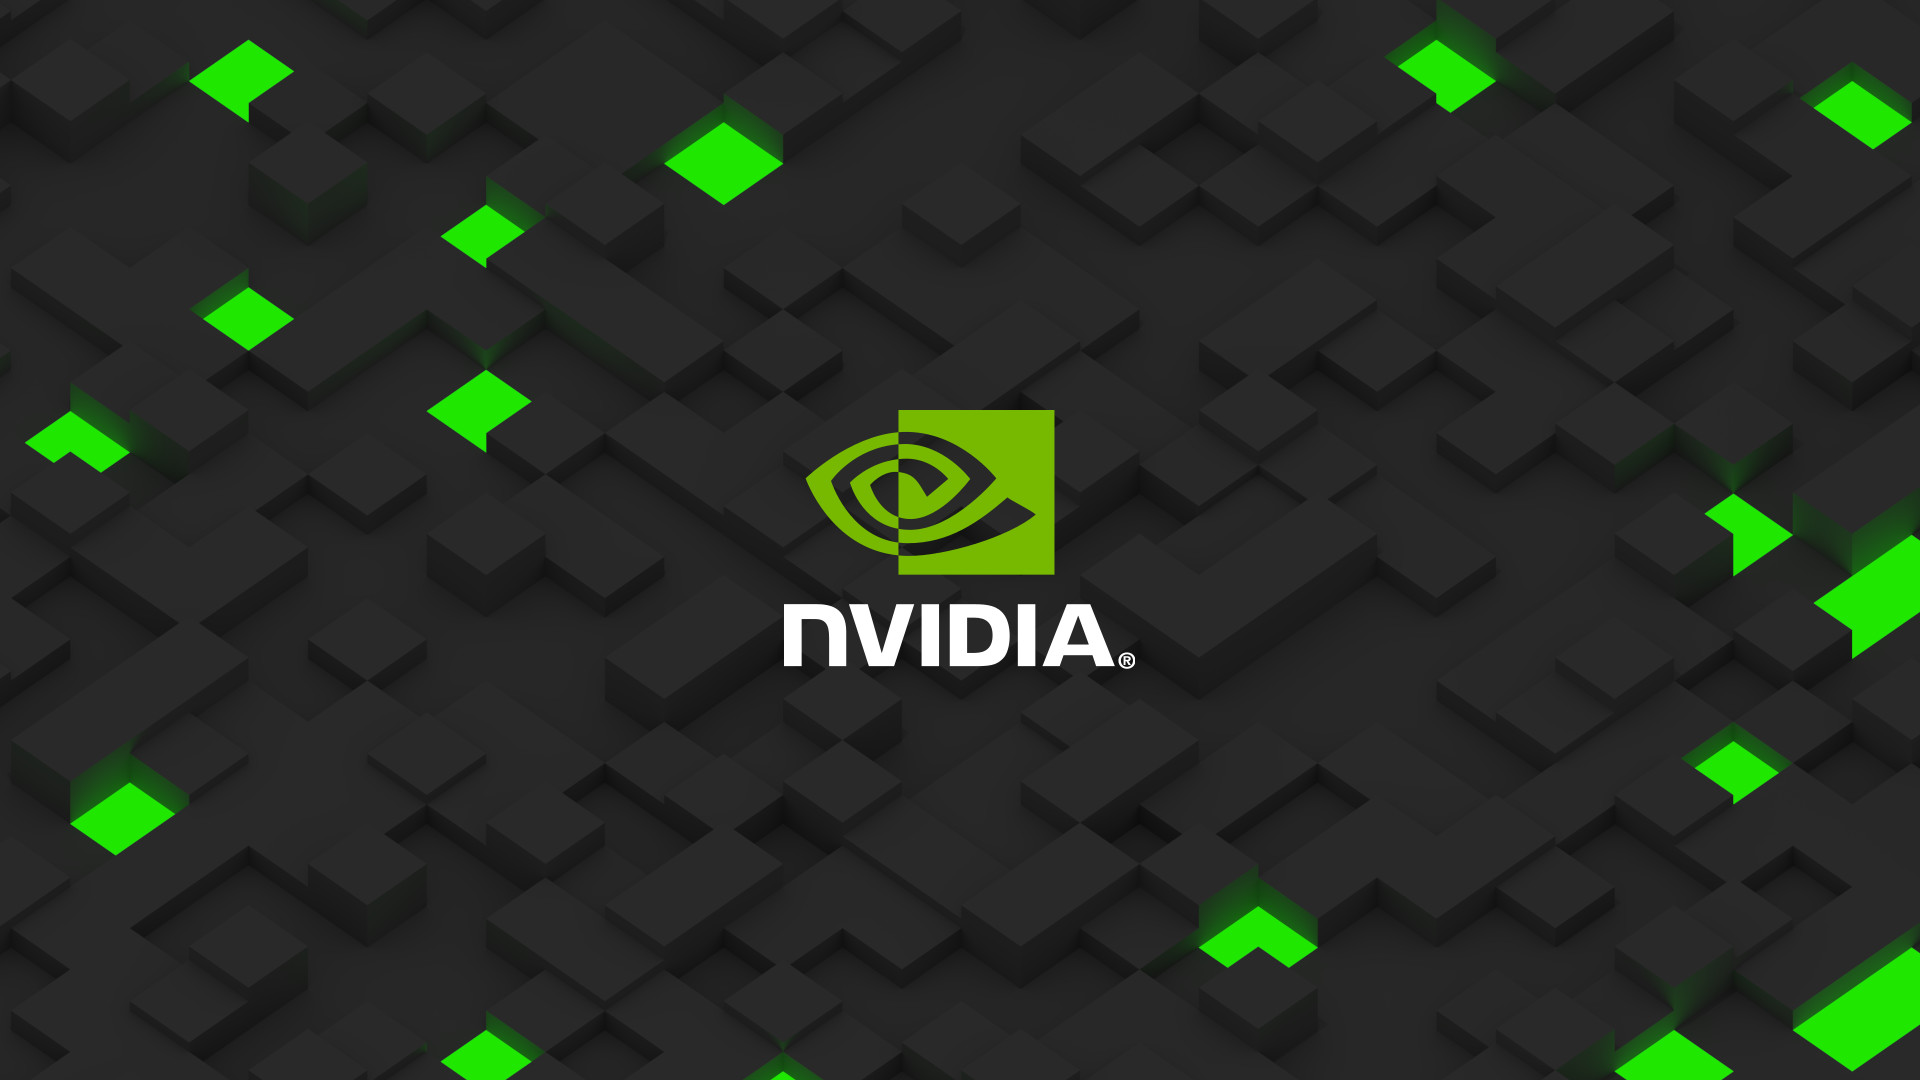 Nvidia Wallpapers 83 images